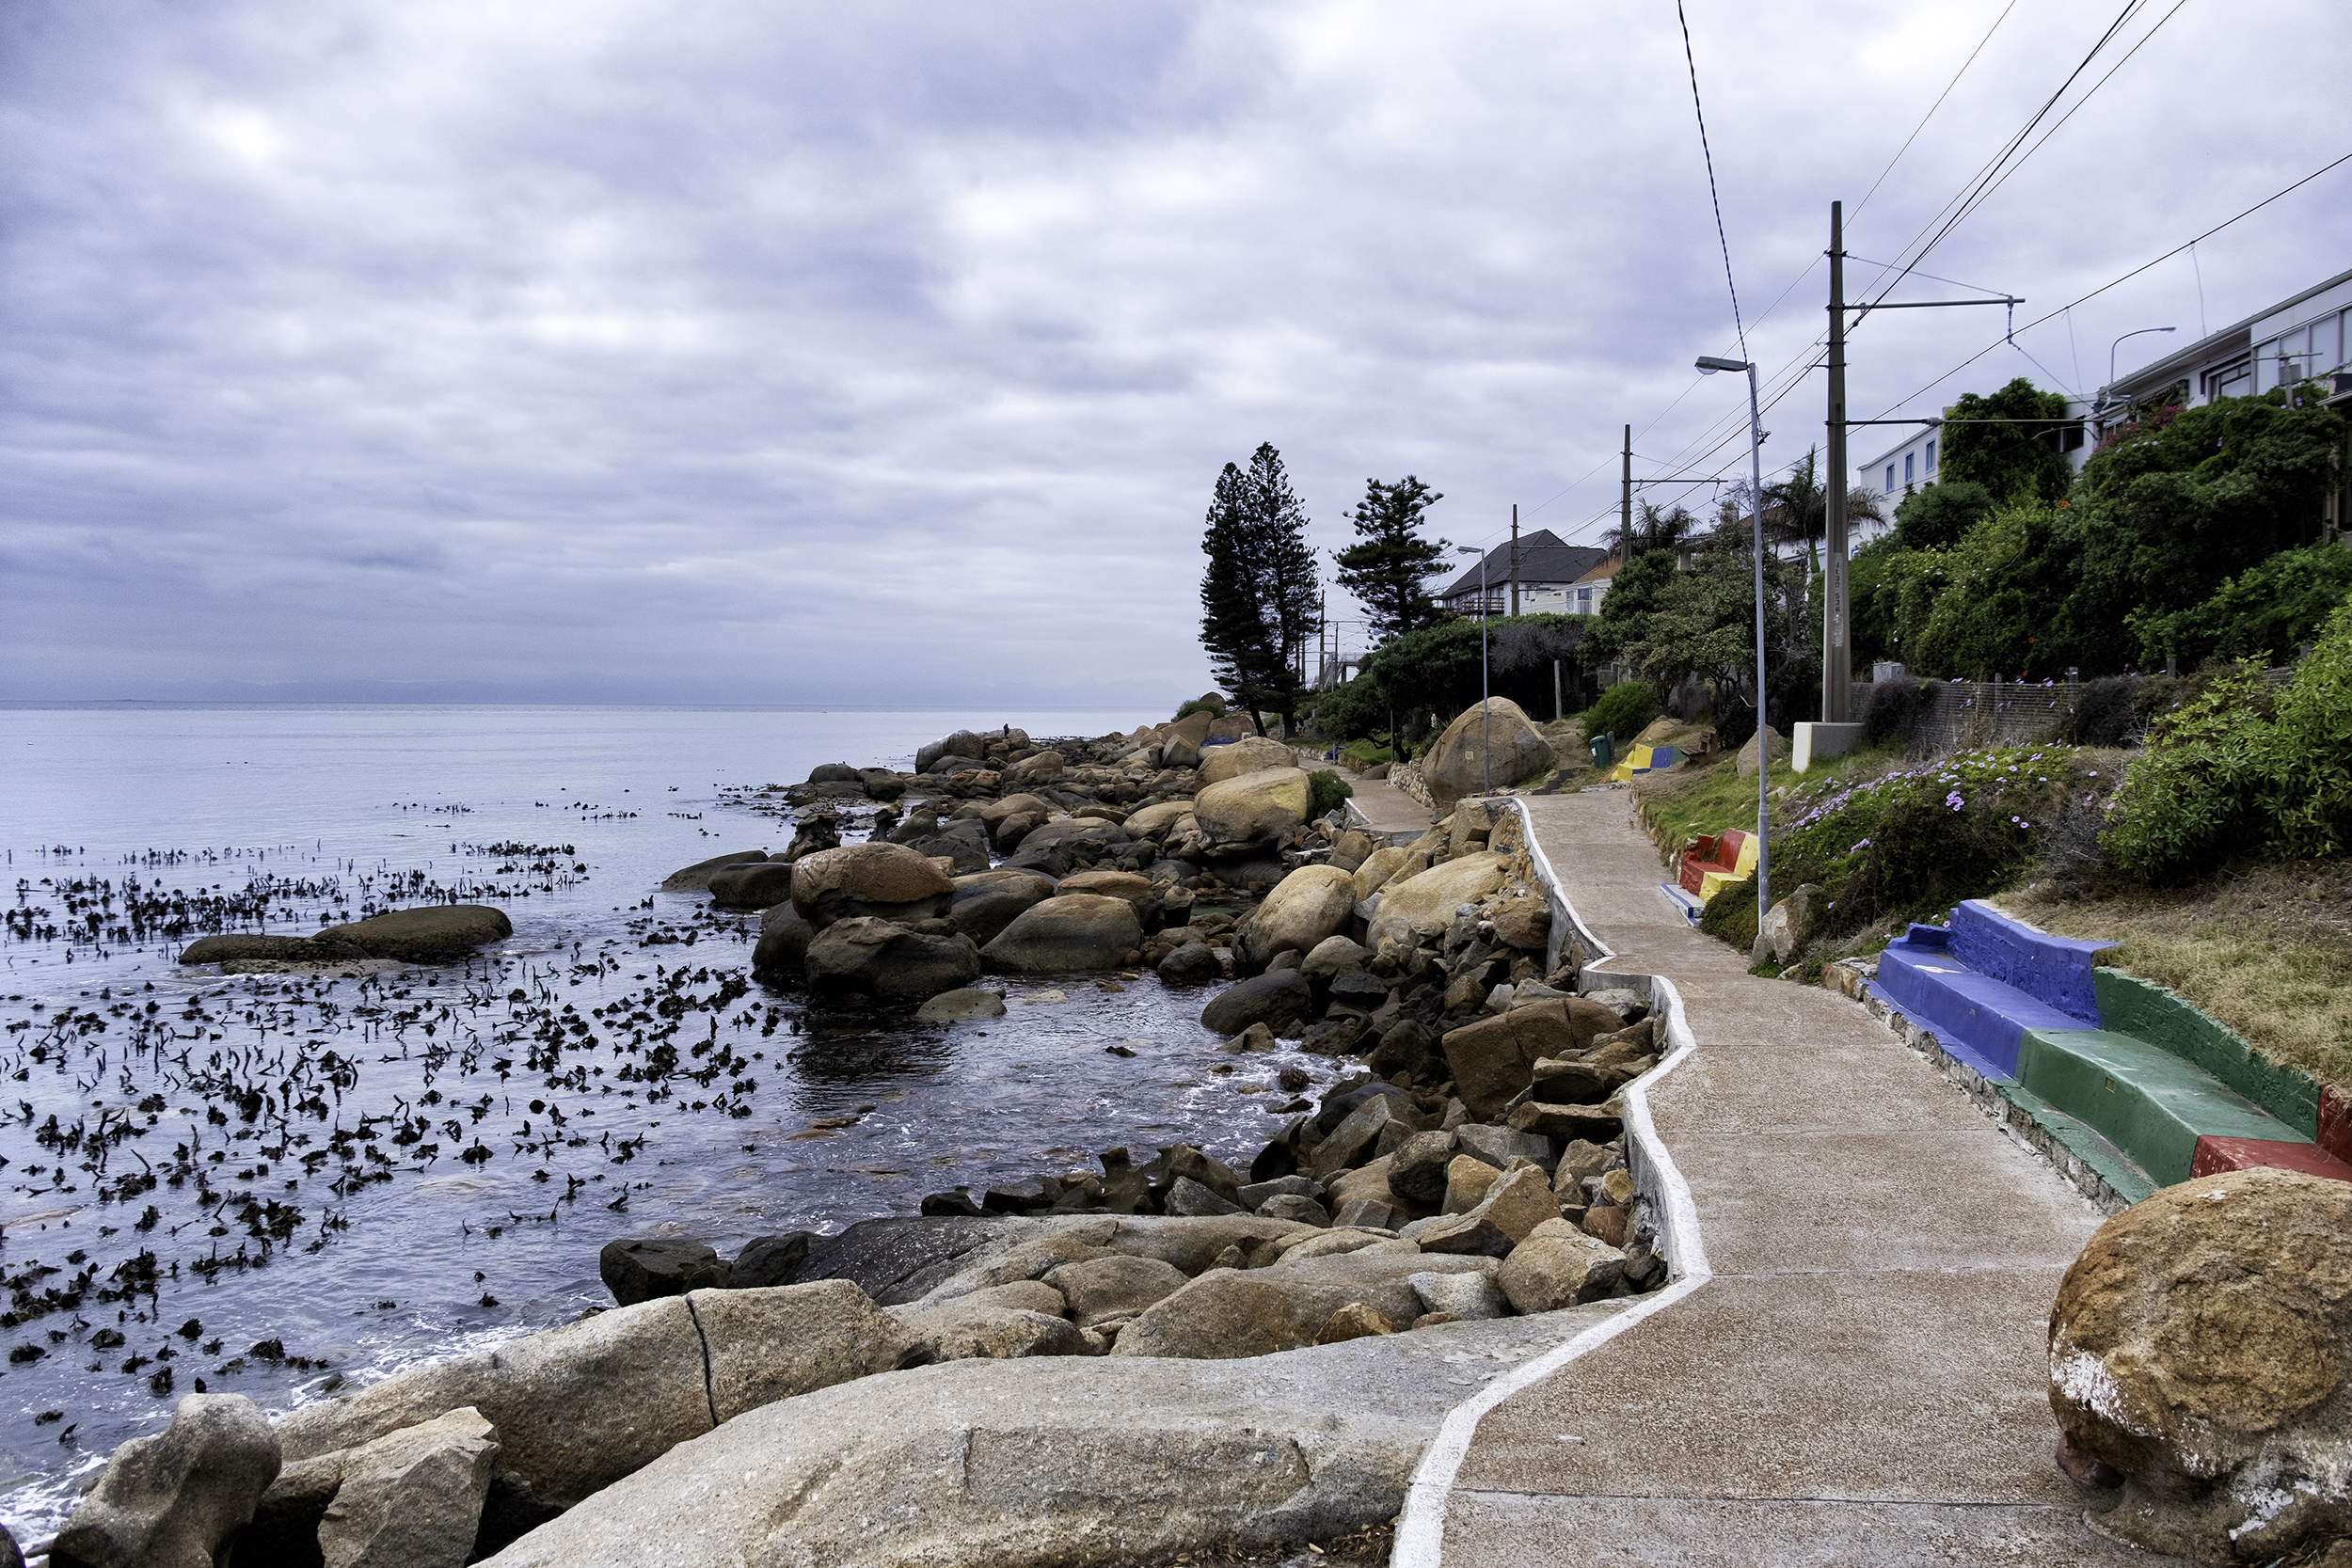 Fish Hoek, Cape Town, SA